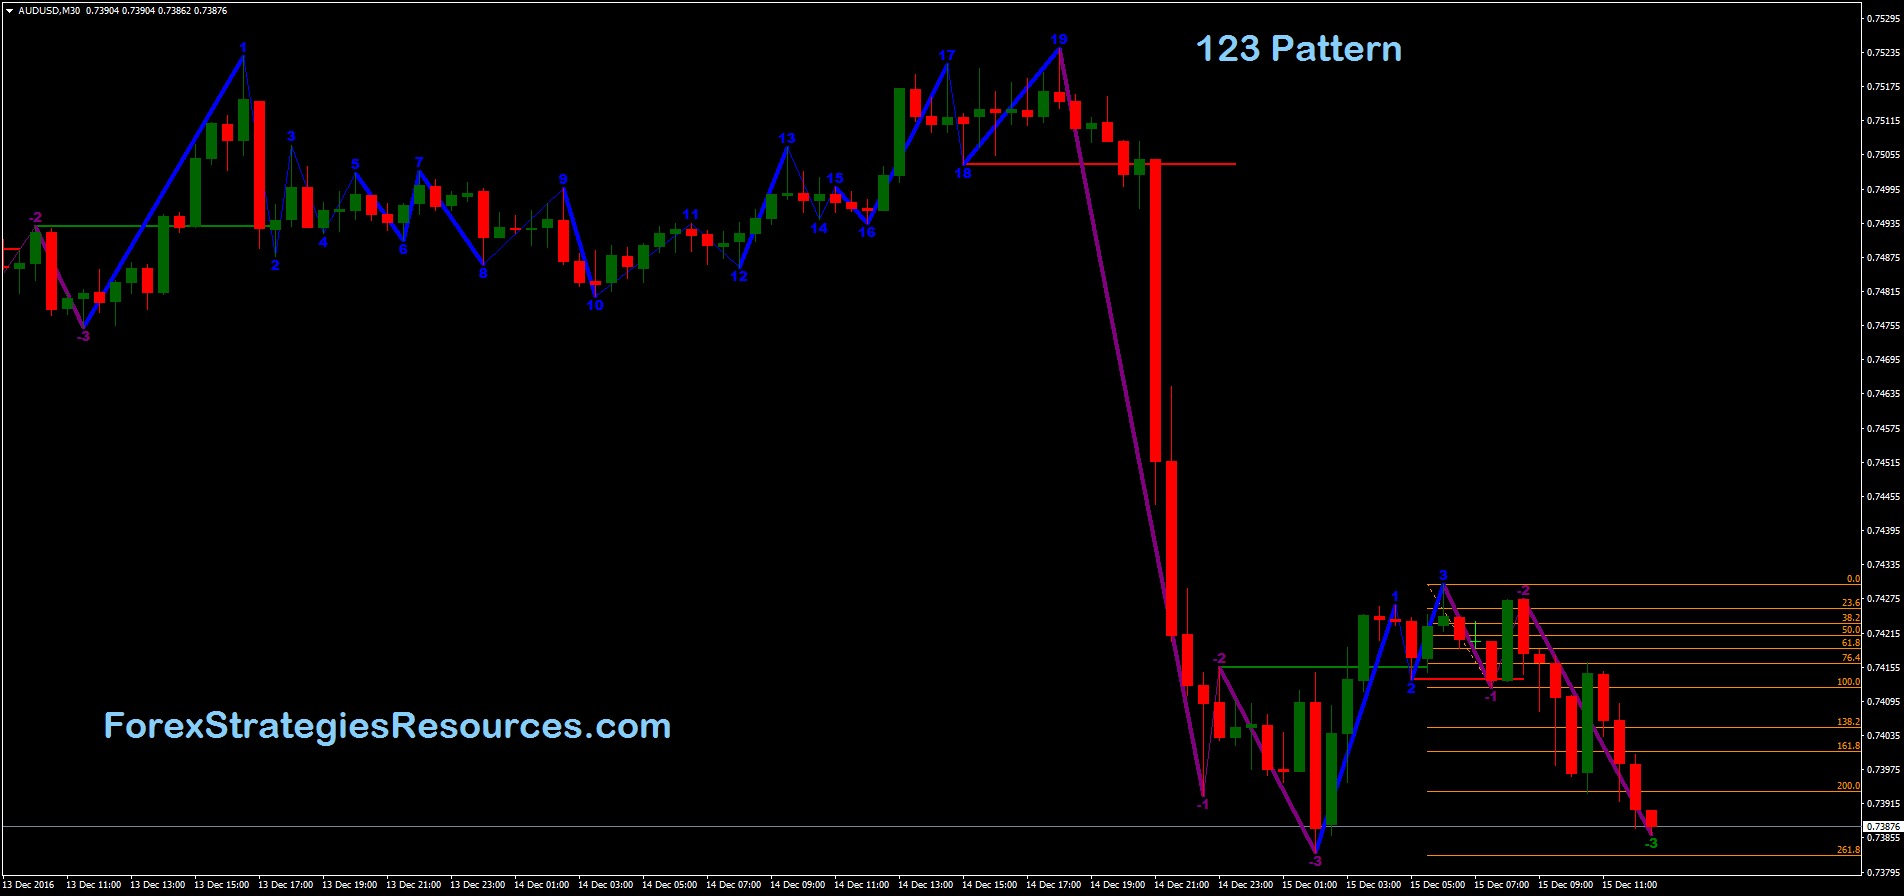 Forex 123 pattern indicator metatrader commercial real estate investment listings